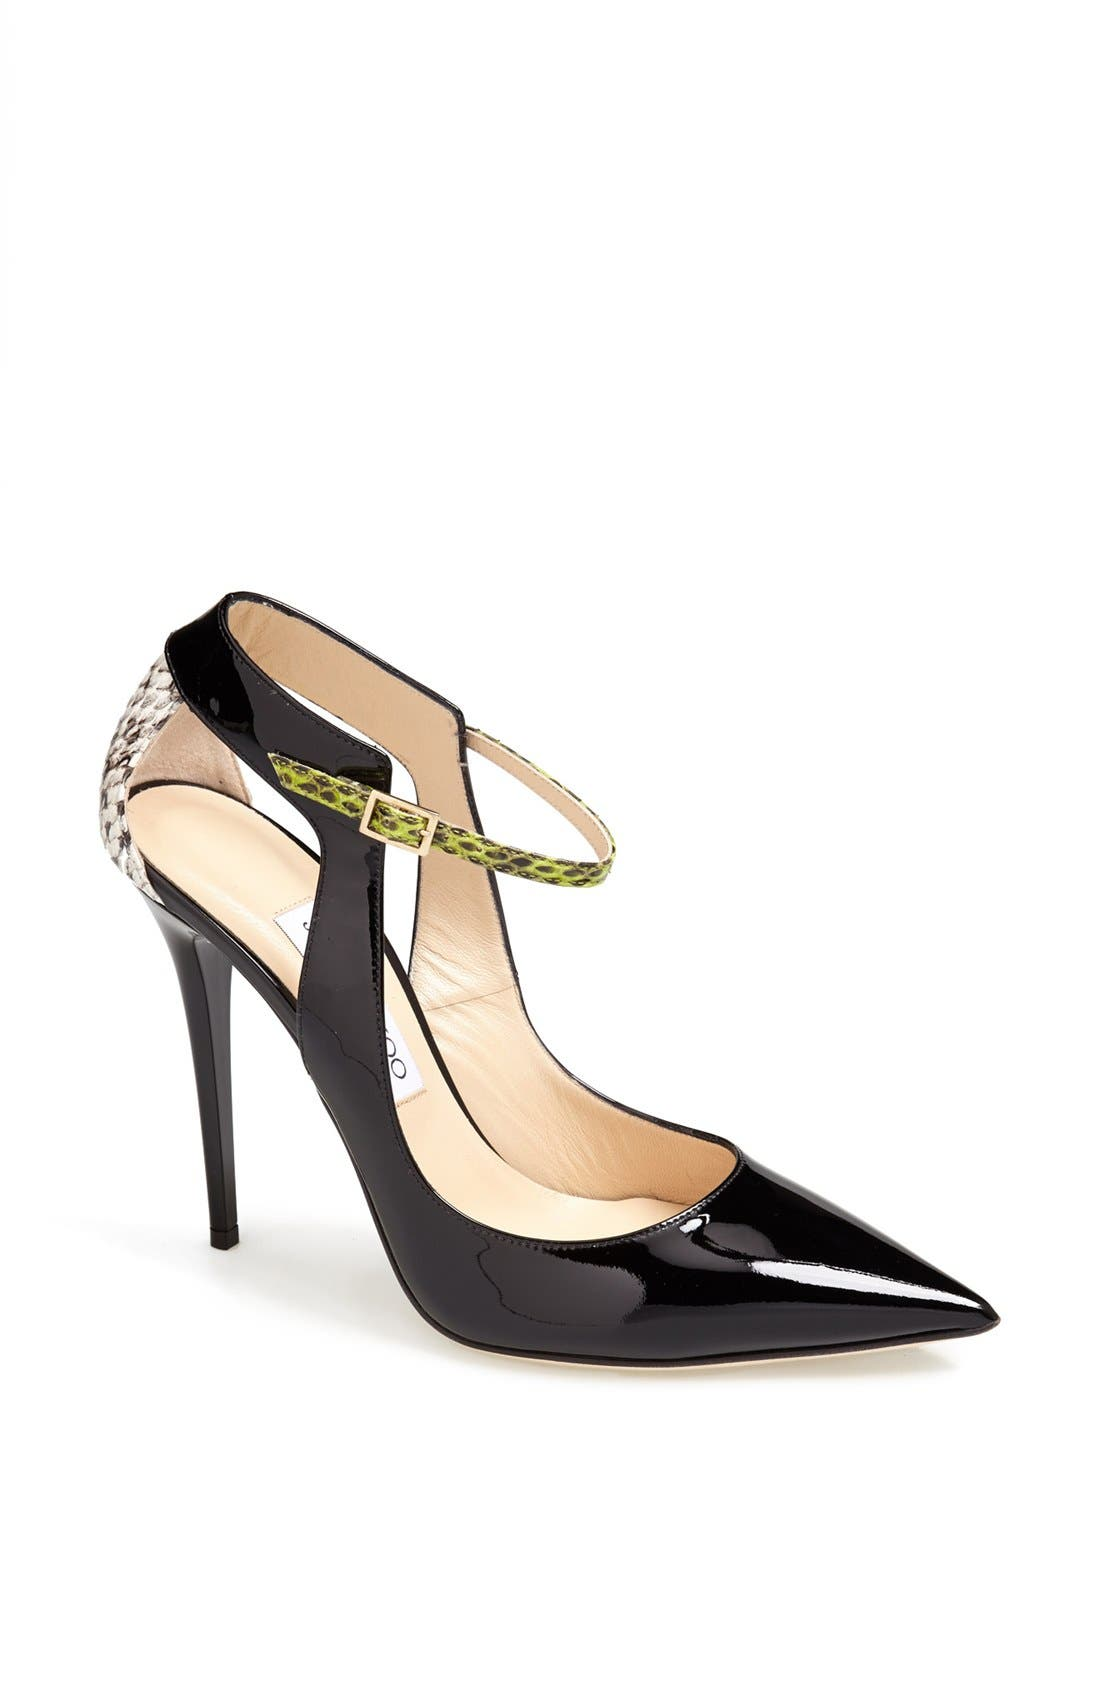 Main Image - Jimmy Choo 'Maiden' Pointy Toe Pump